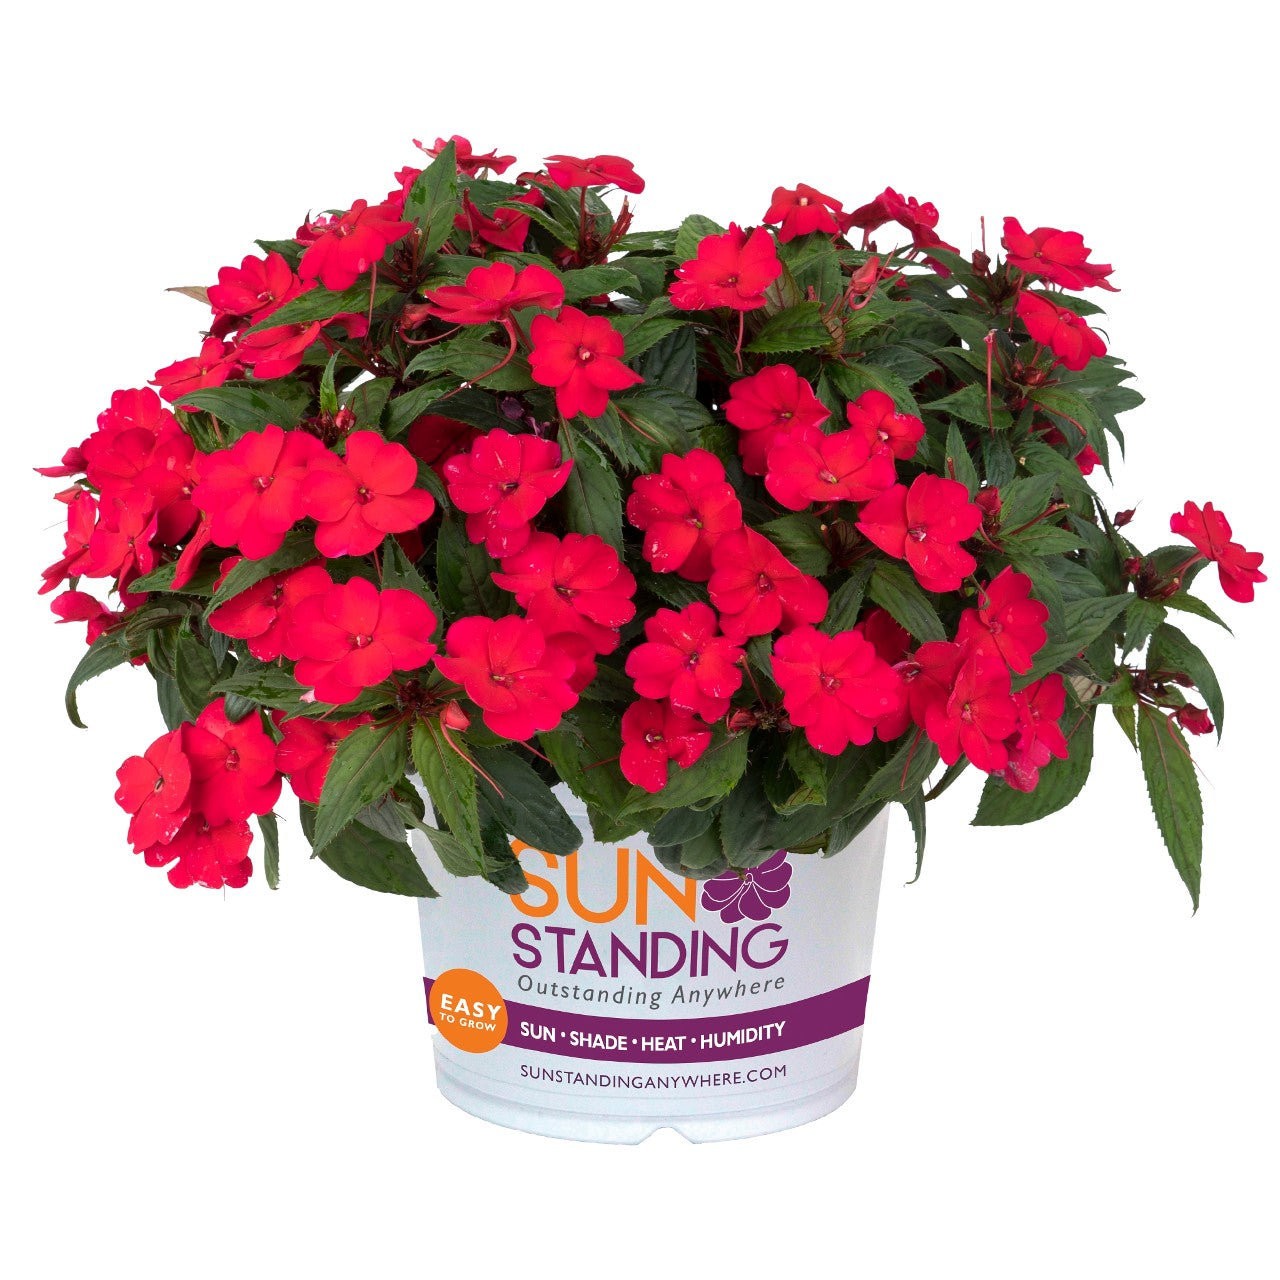 IMPATIENS NEW GUINEA SUNSTANDING Apollo Cherry Red